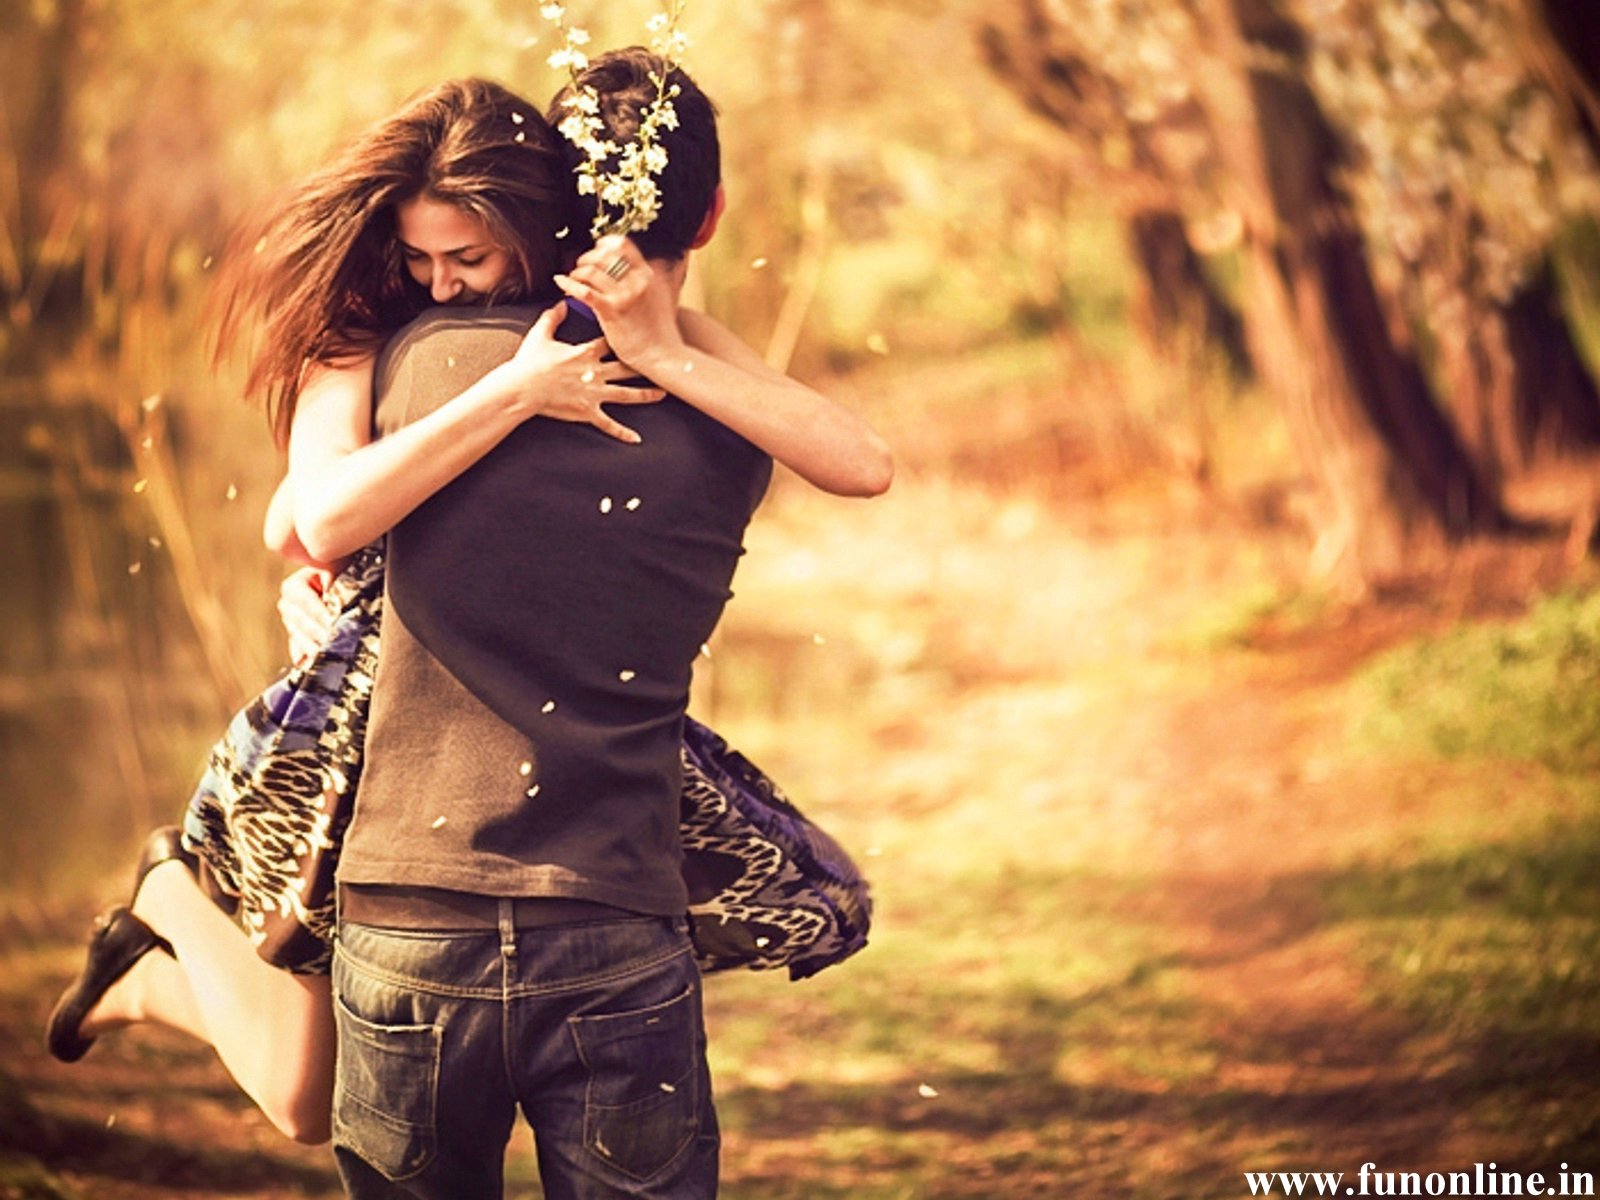 Pleasing-Couple-Love-Hug-Wallpaper[1]